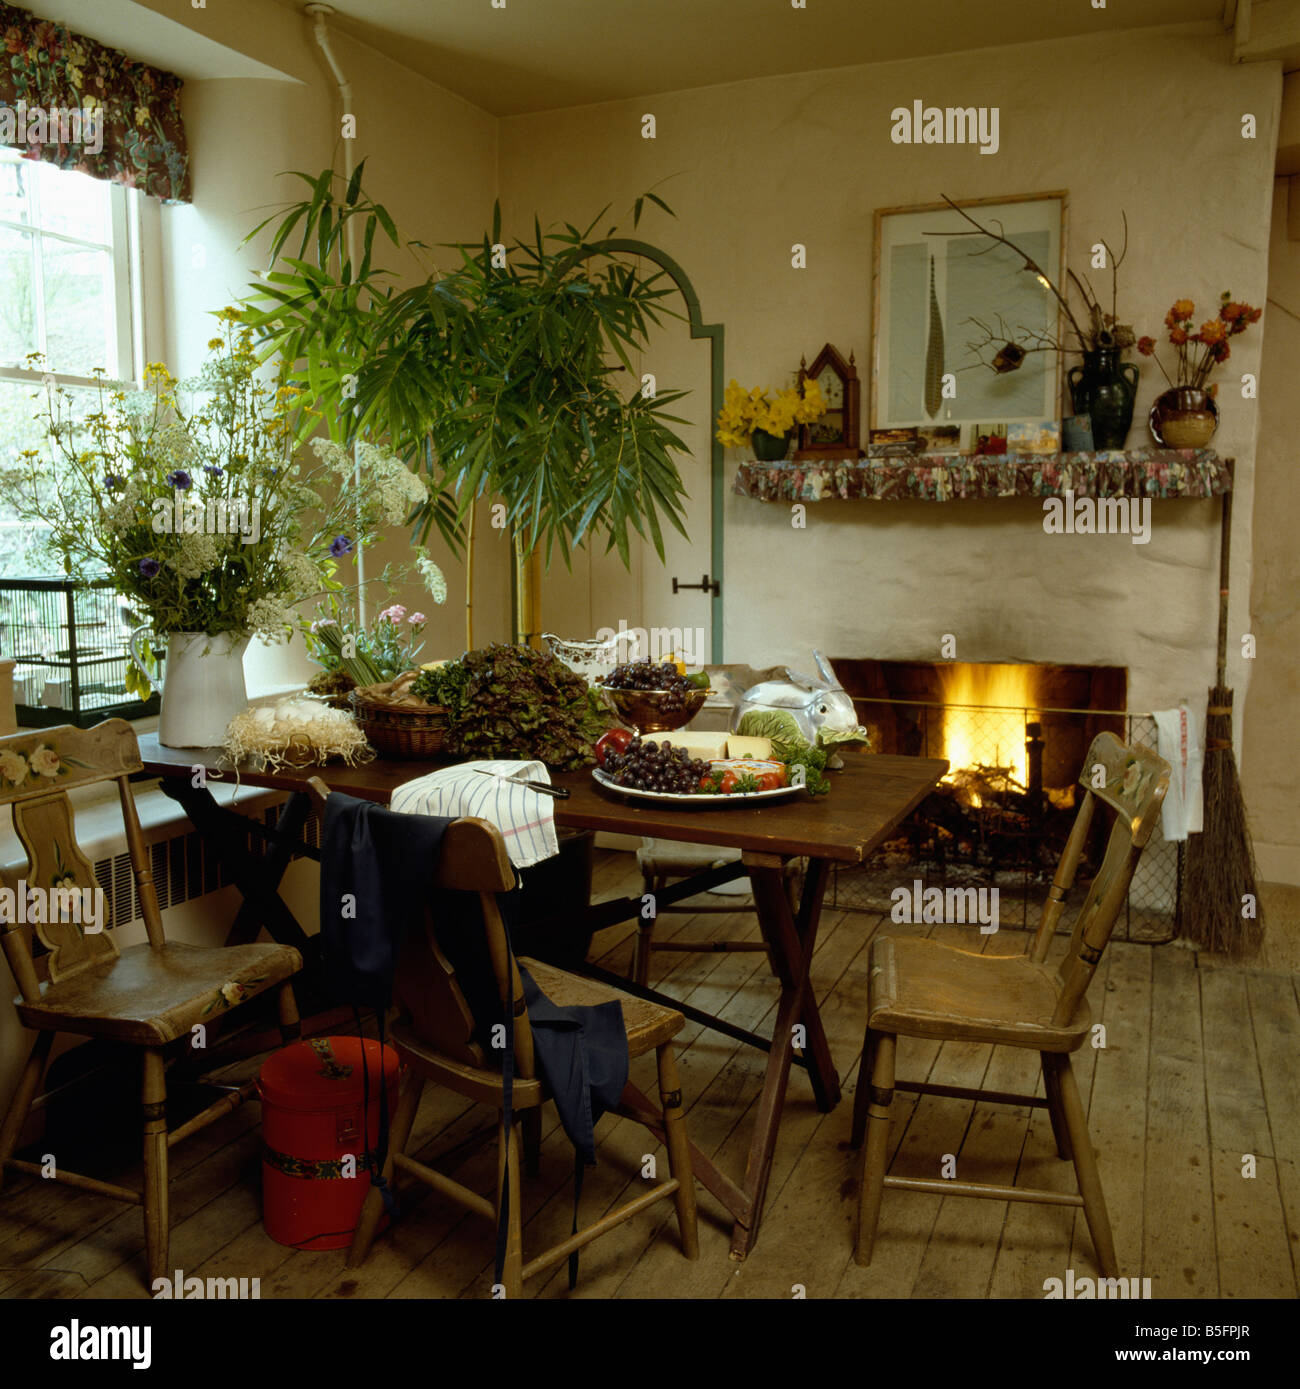 Lighted Fire In Fireplace And Food On Wooden Table With Matching Chairs Simple Country Dining Room Green Houseplant